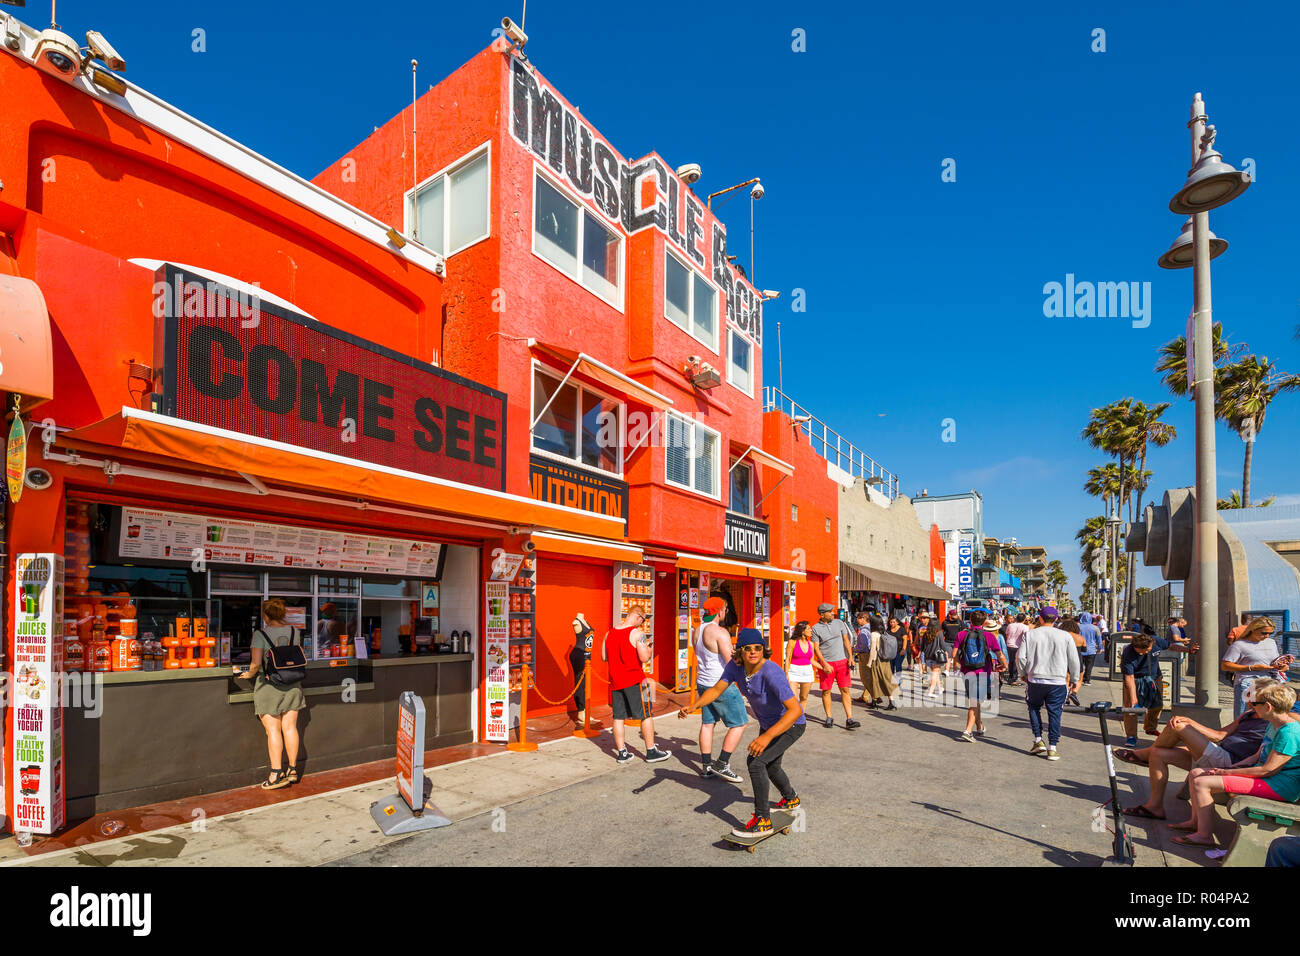 View of colourful shops on Ocean Front Walk in Venice Beach, Los Angeles, California, United States of America, North America Stock Photo